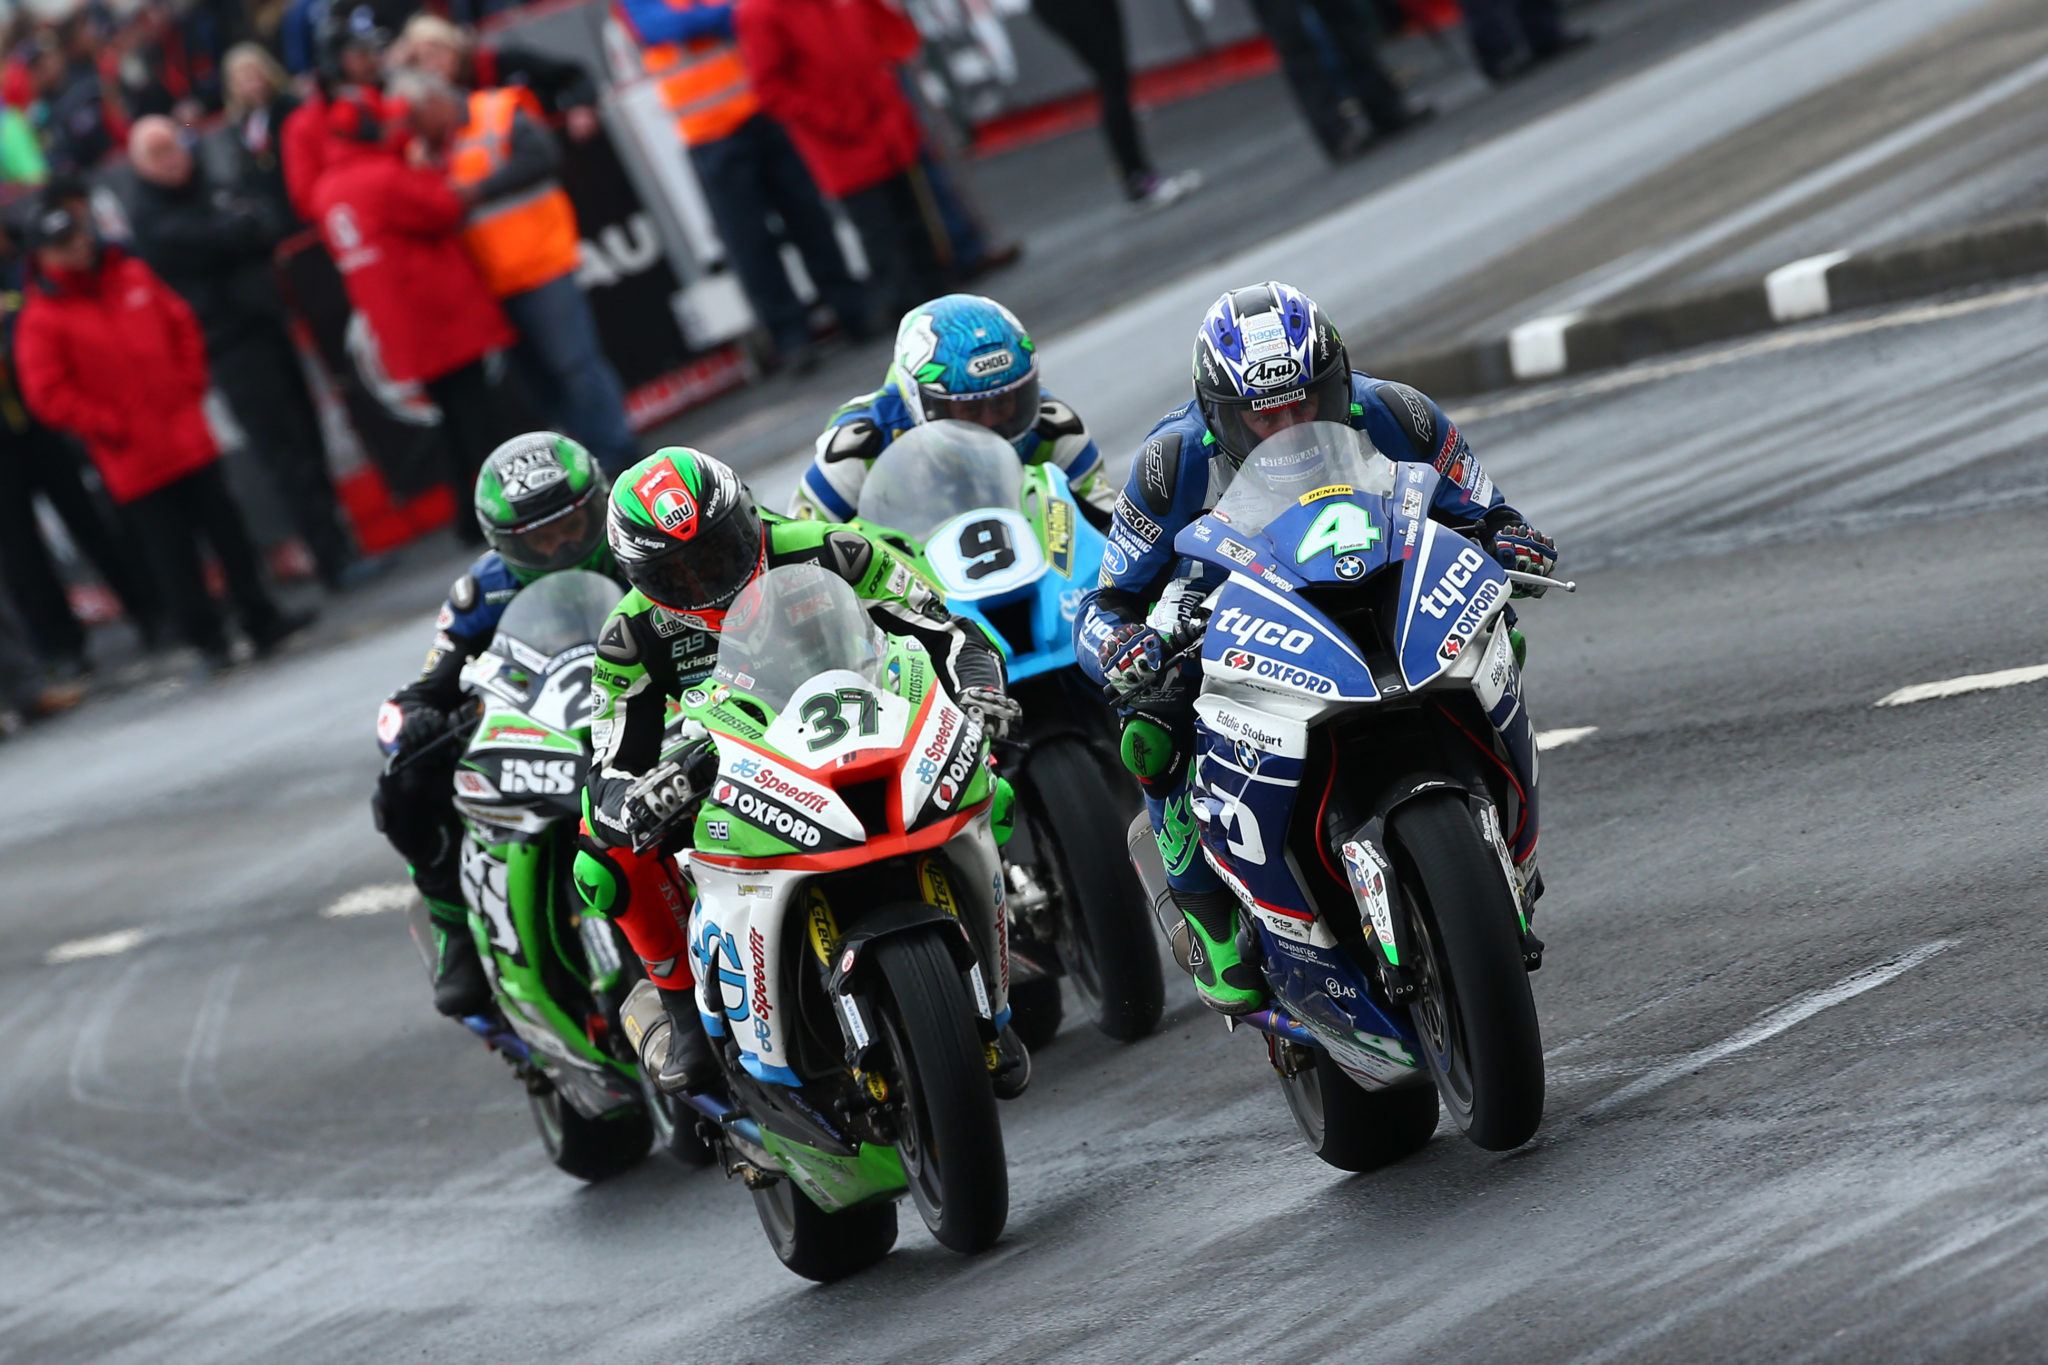 Pack action at North West 200 credit Impact Images